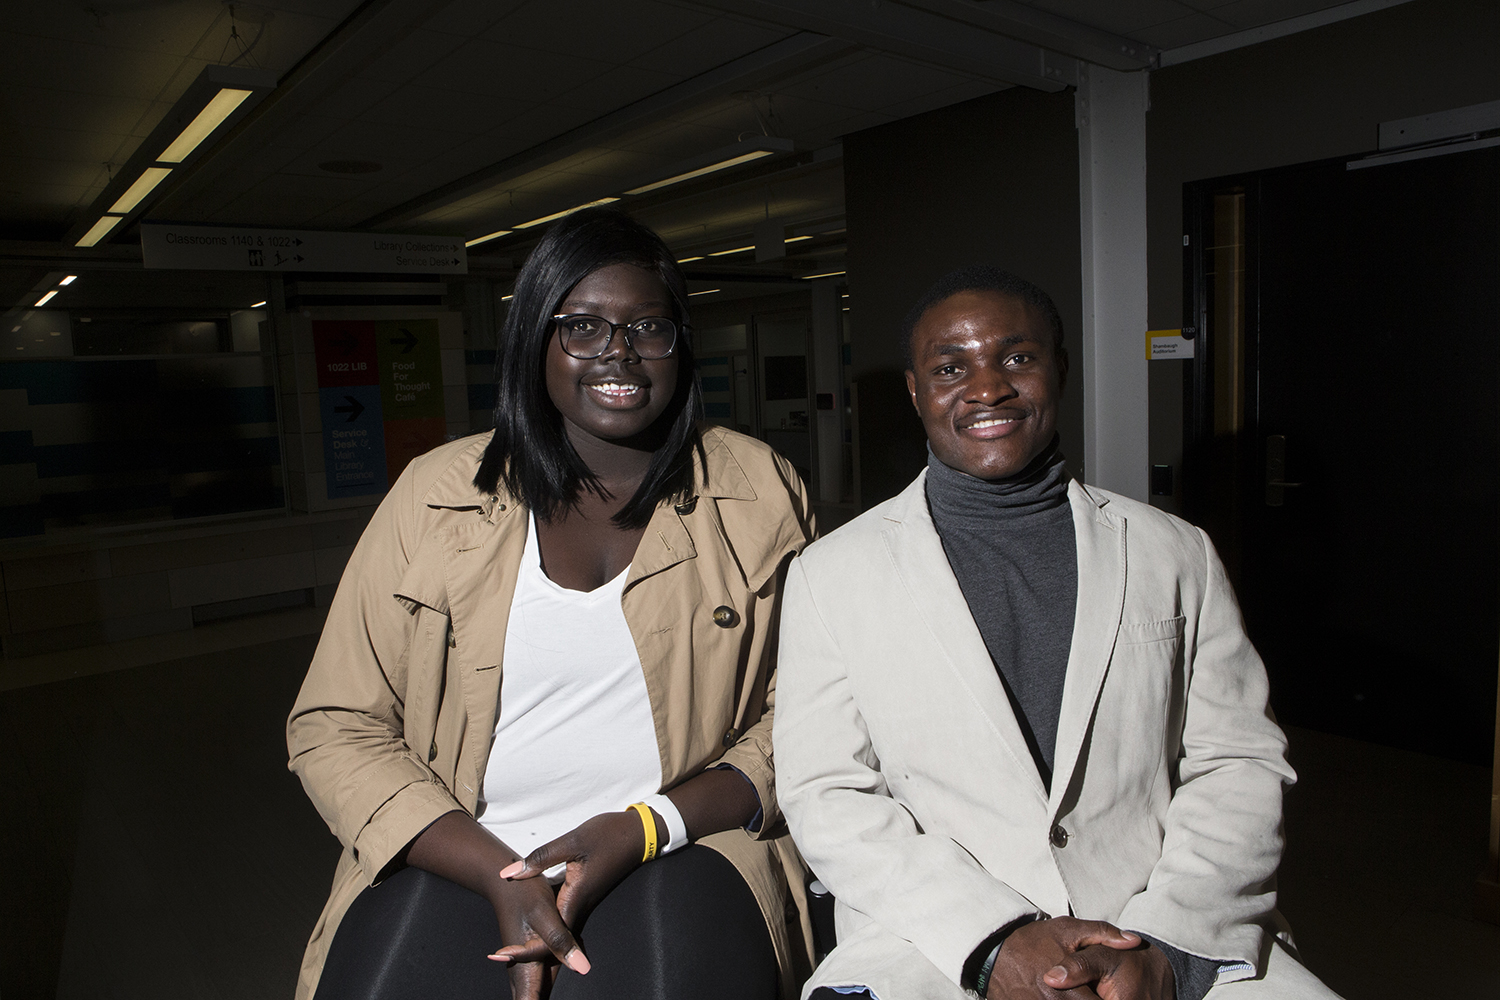 Adiu Arou (left) and Dady Mansaray pose for a portrait in the Main Library on Monday, April 1, 2019. Mansaray and Arou will be running for president and vice president on the UI Charge ticket.